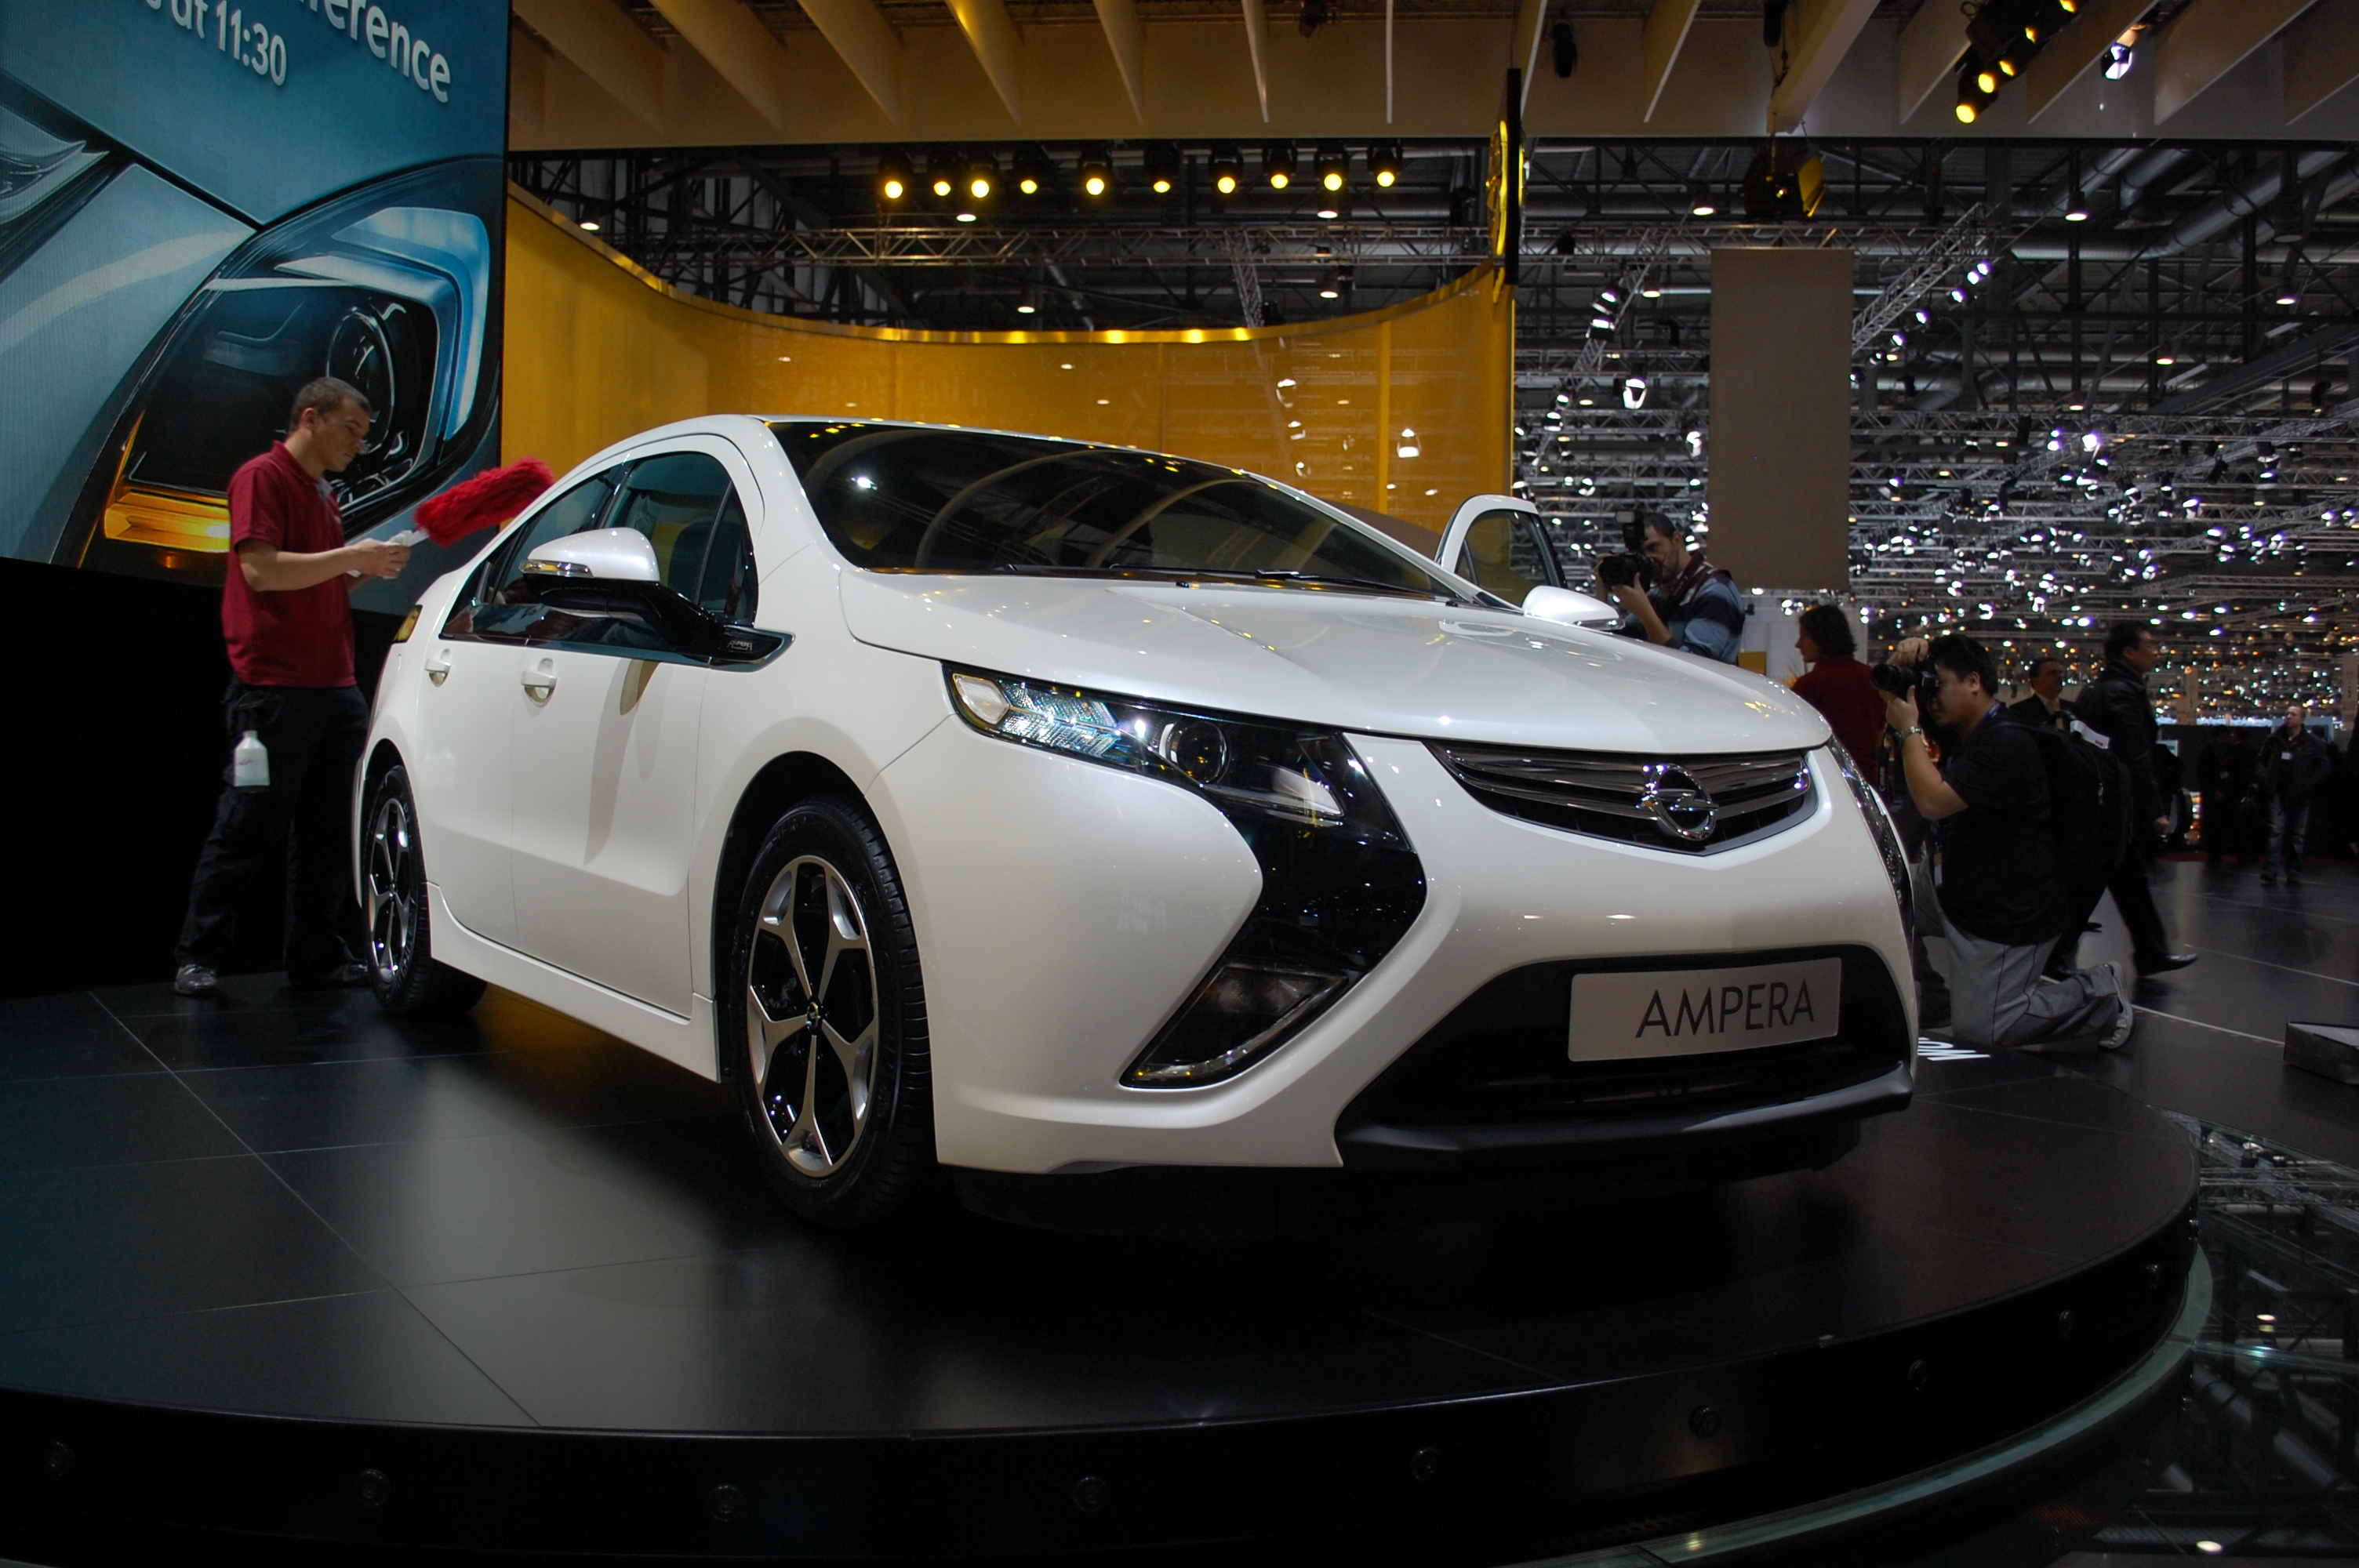 Opel Ampera Chevy Volt Voted 2012 European Car Of The Year